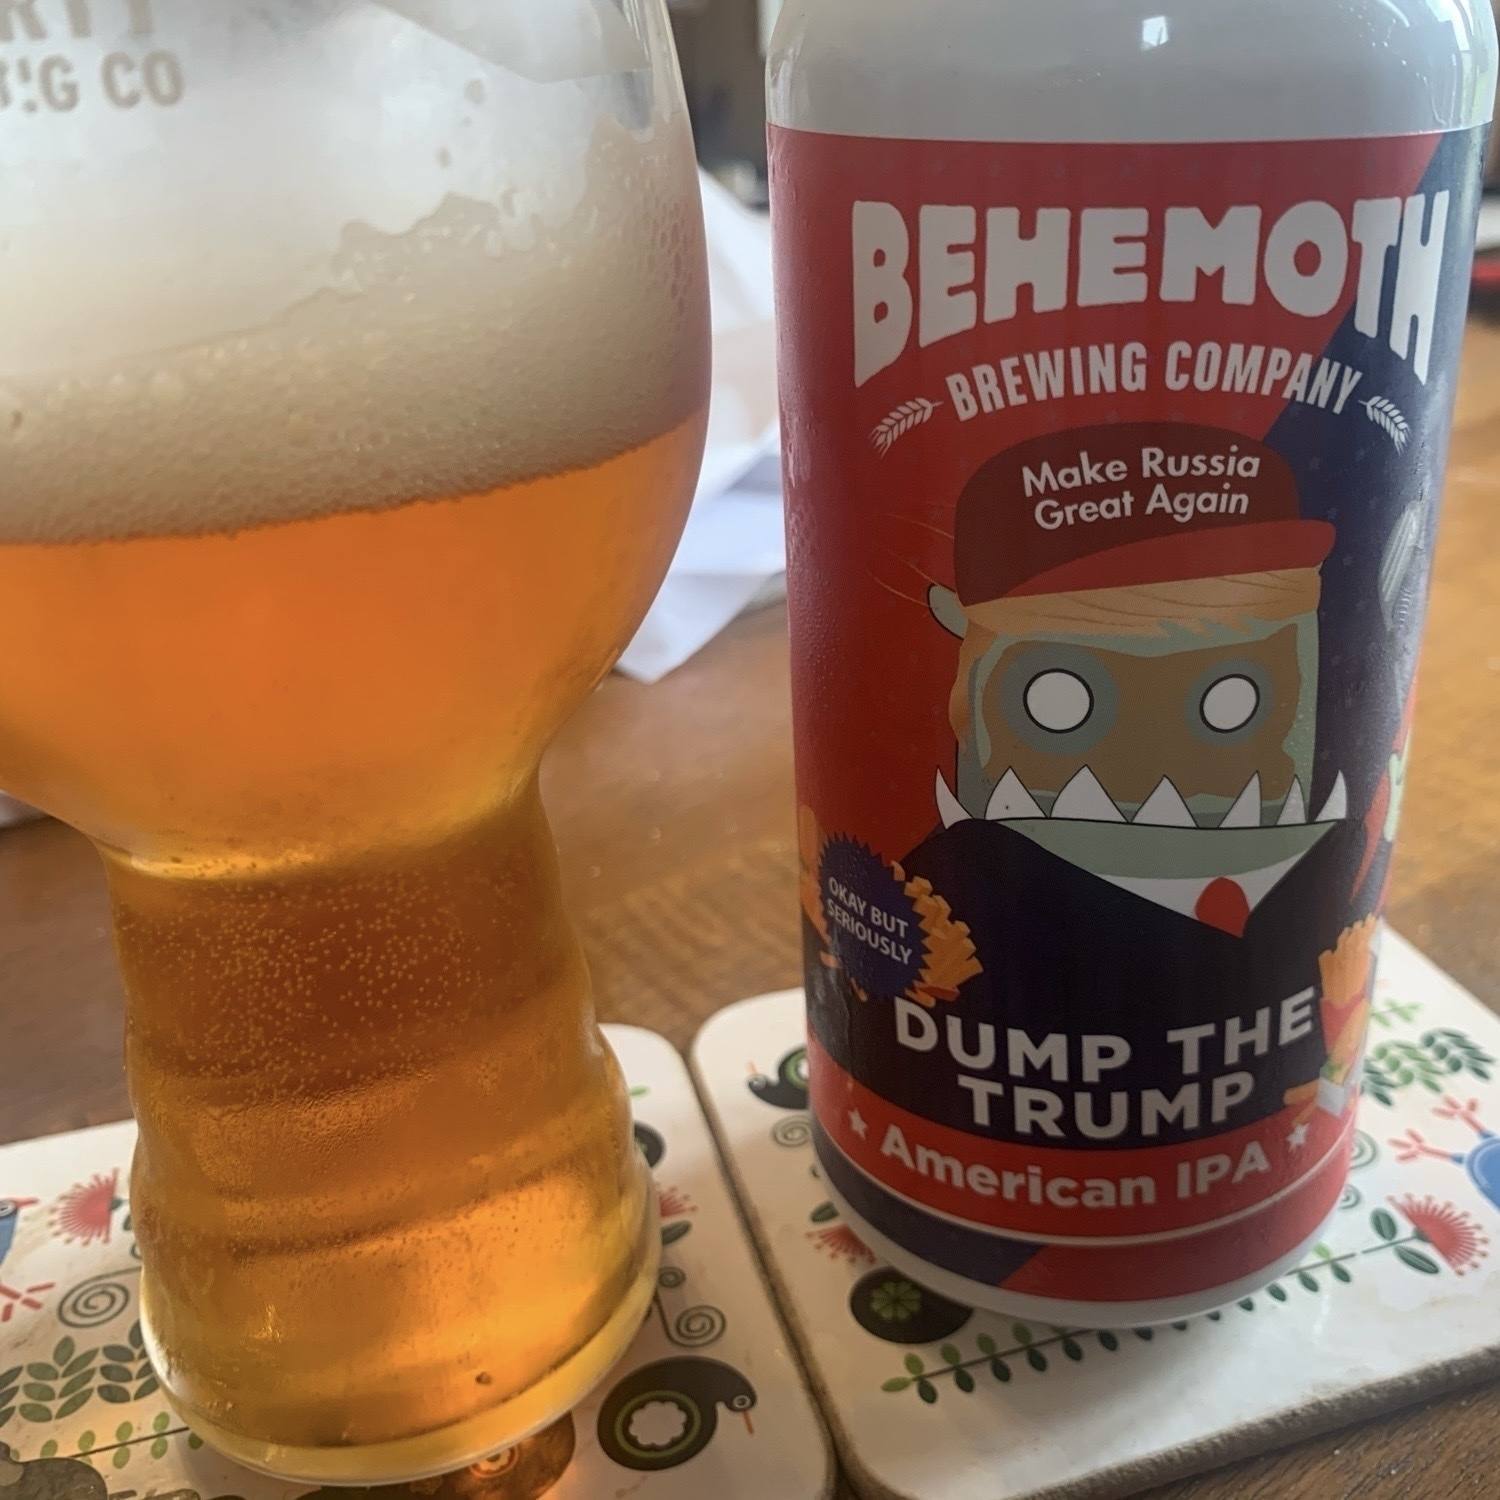 A glass and a can of Dump the Trump American IPA by Behemoth Brewing